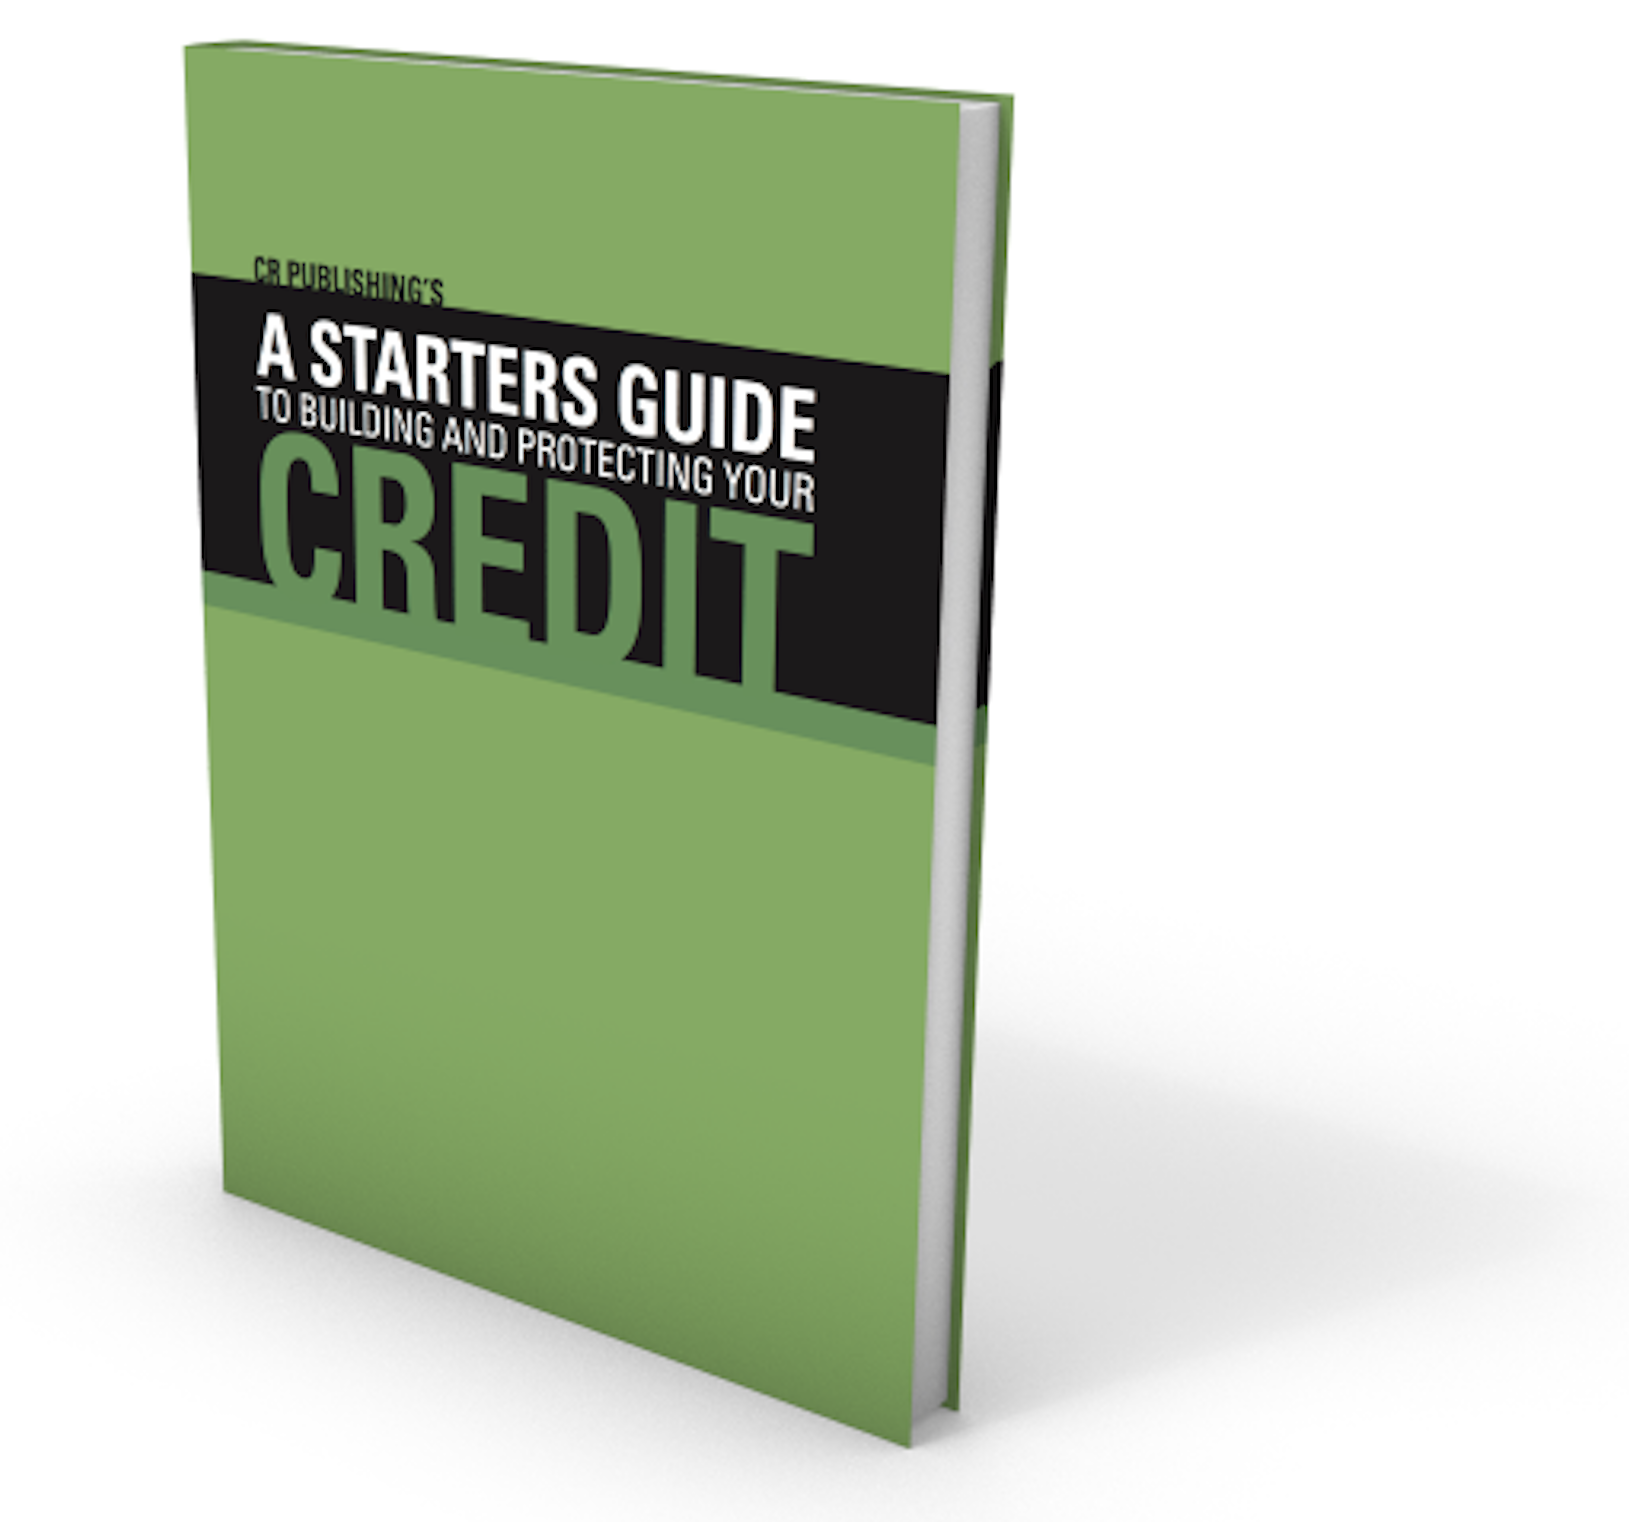 Want to start building and protecting your amazing credit score? Are you going to get married soon? There are some things that you need to know before you do!